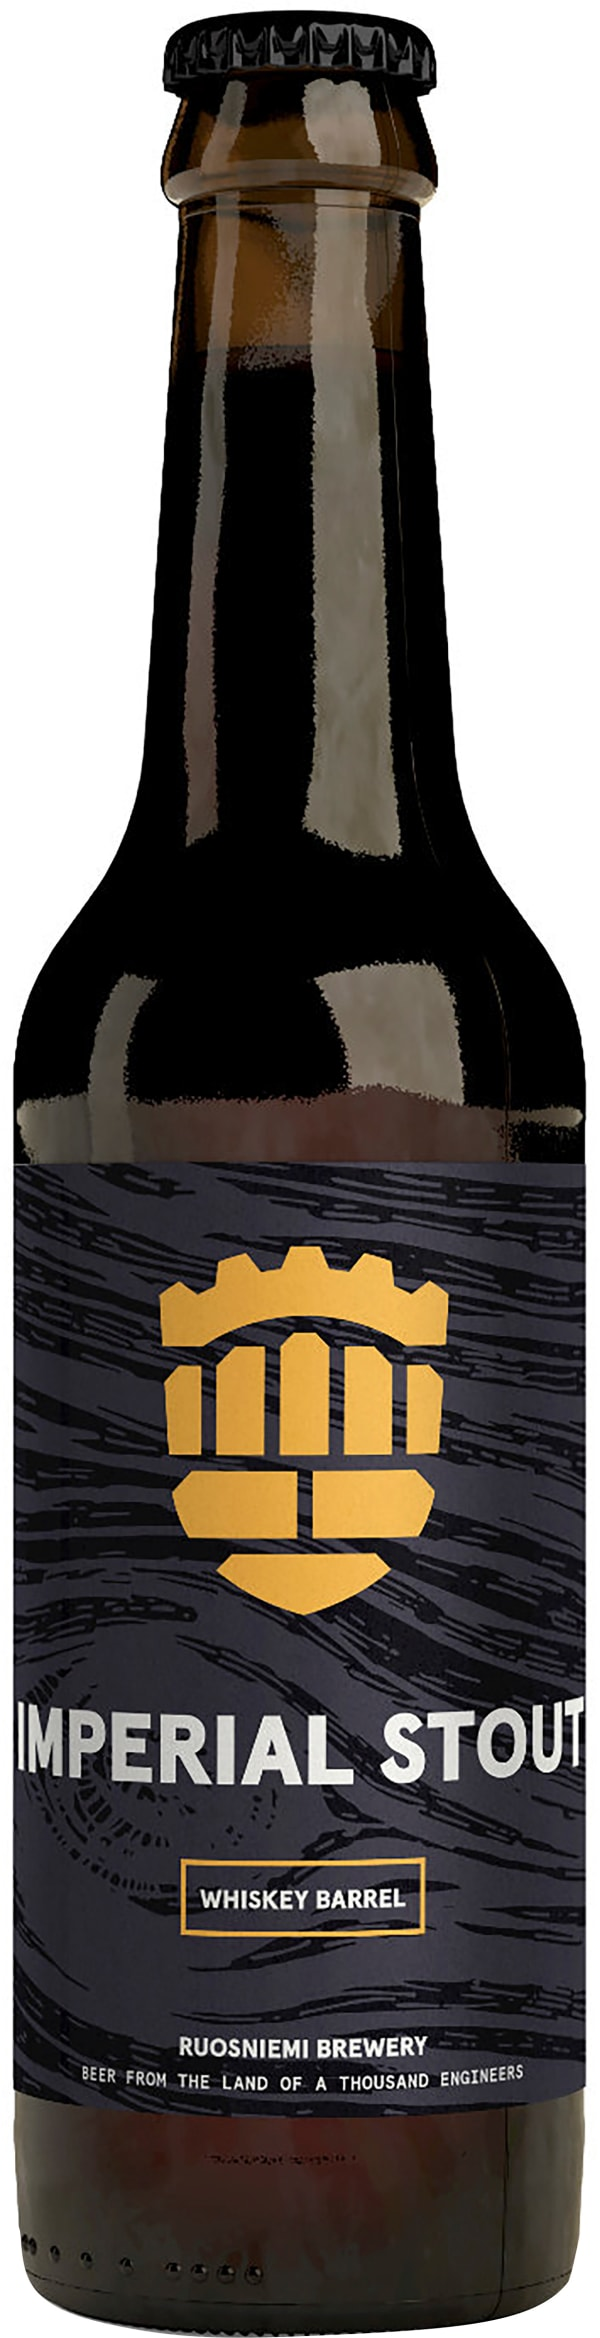 Ruosniemen Whiskey Barrel Imperial Stout